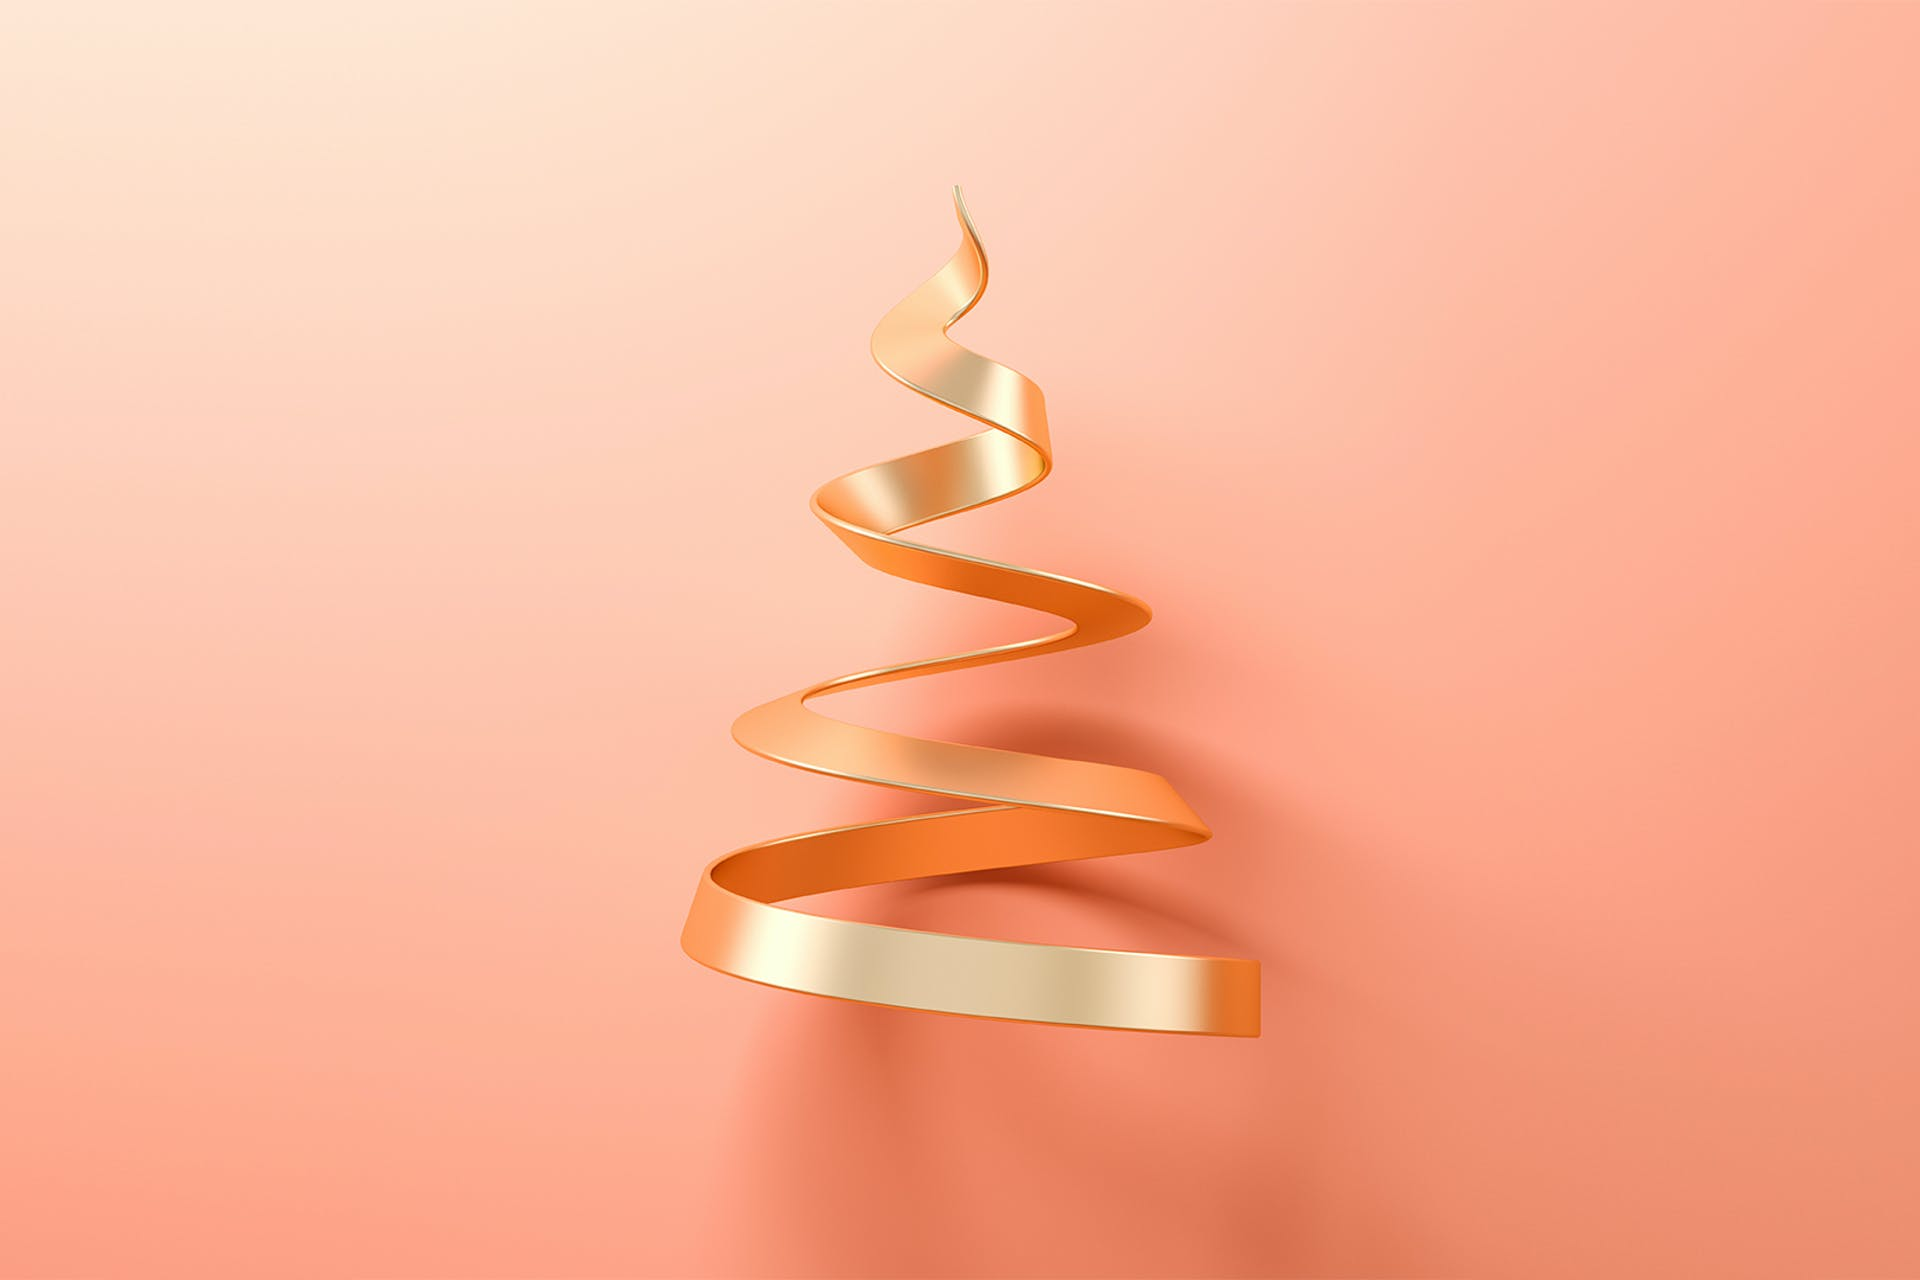 A gold, metal spiral pointing towards the sky set against a light orange backdrop. This image is being used for a blog on content marketing trends for 2022.